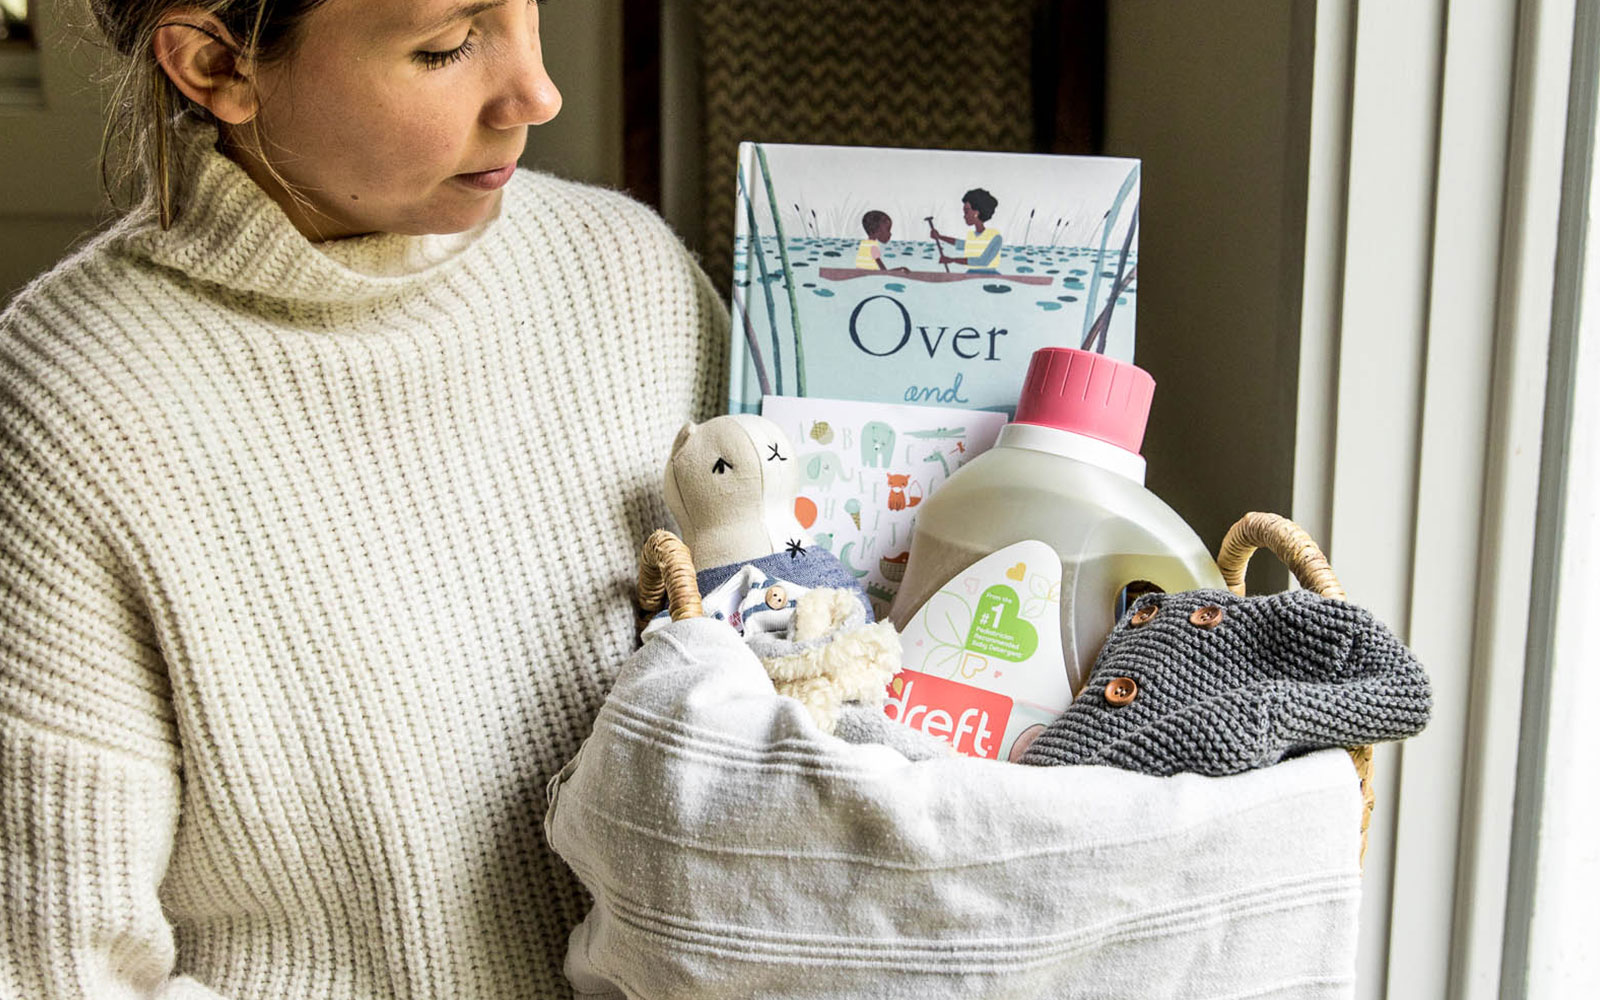 A Simple and Easy Neutral Baby Shower Gift for new moms to help them in the first few months of motherhood. Done in Partnership with Dreft Purtouch and Parents Magazine. More on The Fresh Exchange.